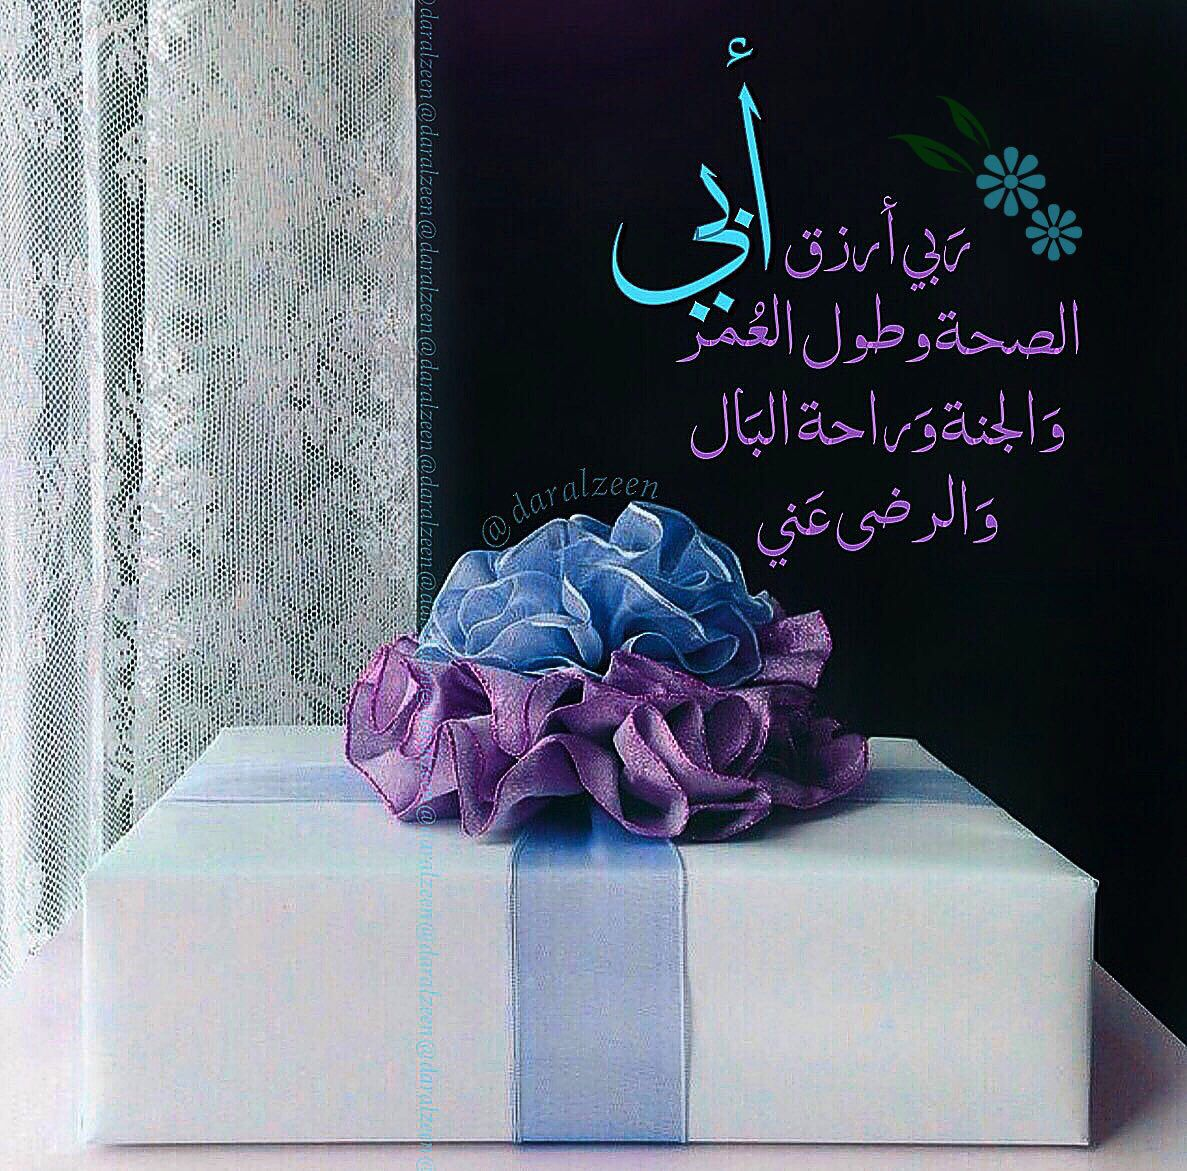 Pin By Daralzeen On أمي Islamic Quotes Wallpaper Sweet Words Miss You Dad